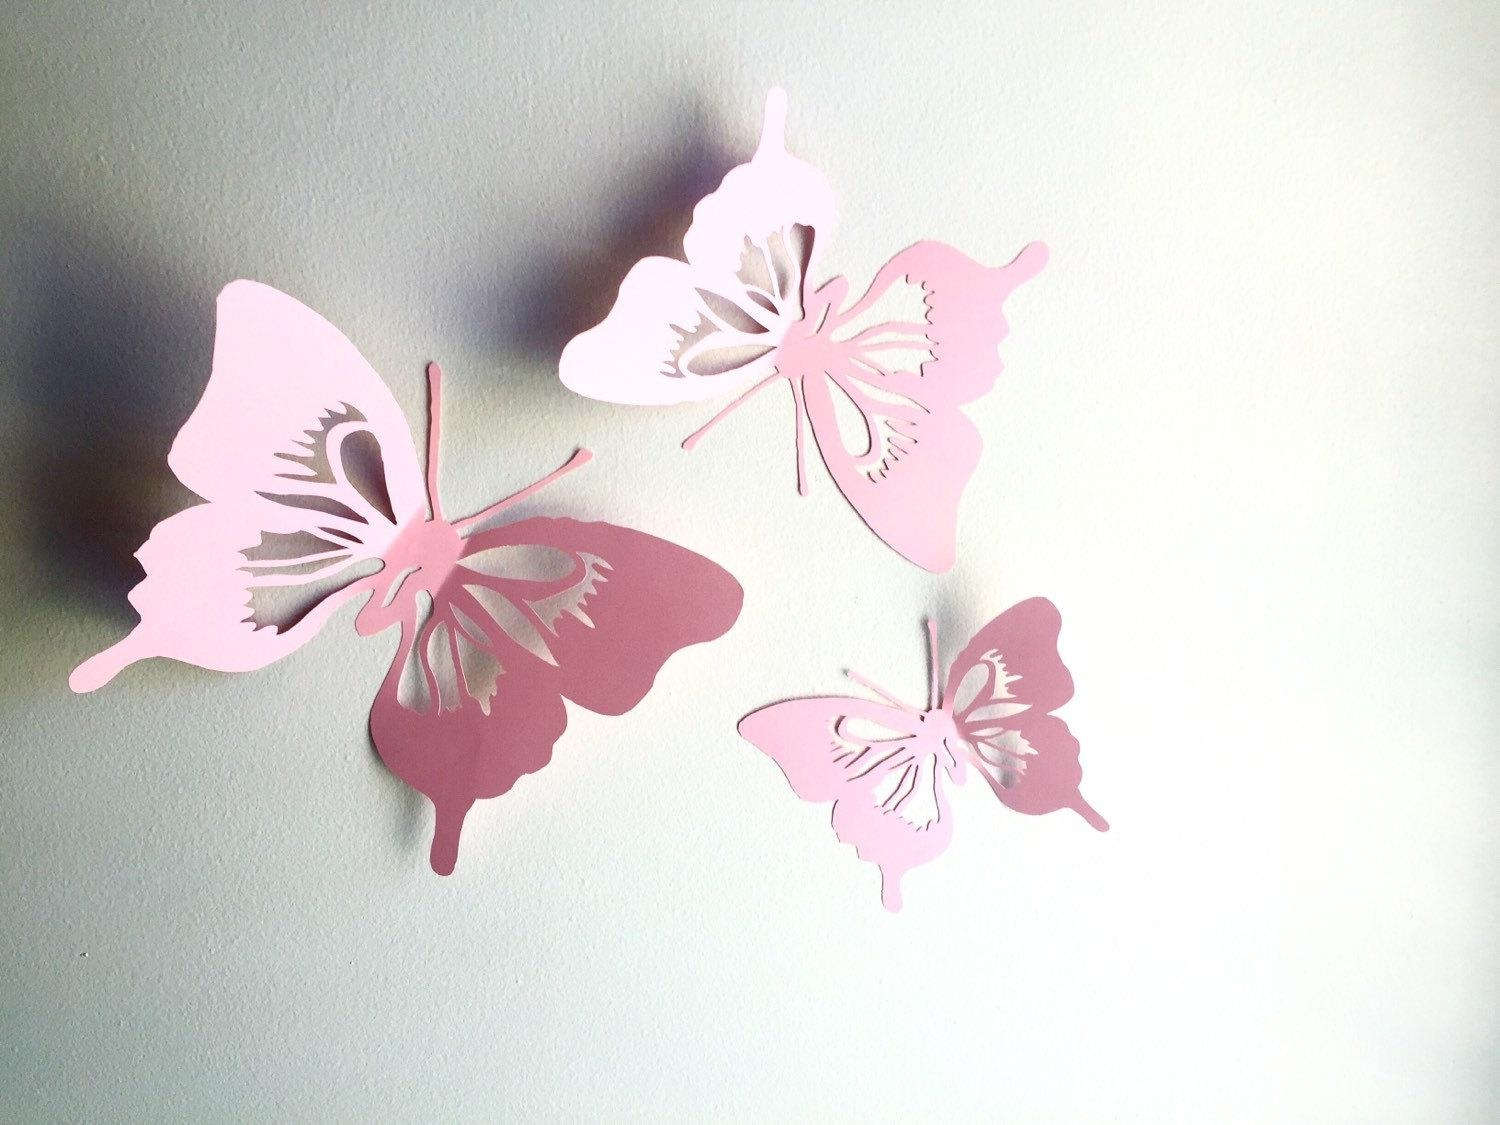 3D Paper Butterfly Wall Art Paper Wall Cut Out Butterfly Intended For 3D Paper Wall Art (Image 2 of 20)